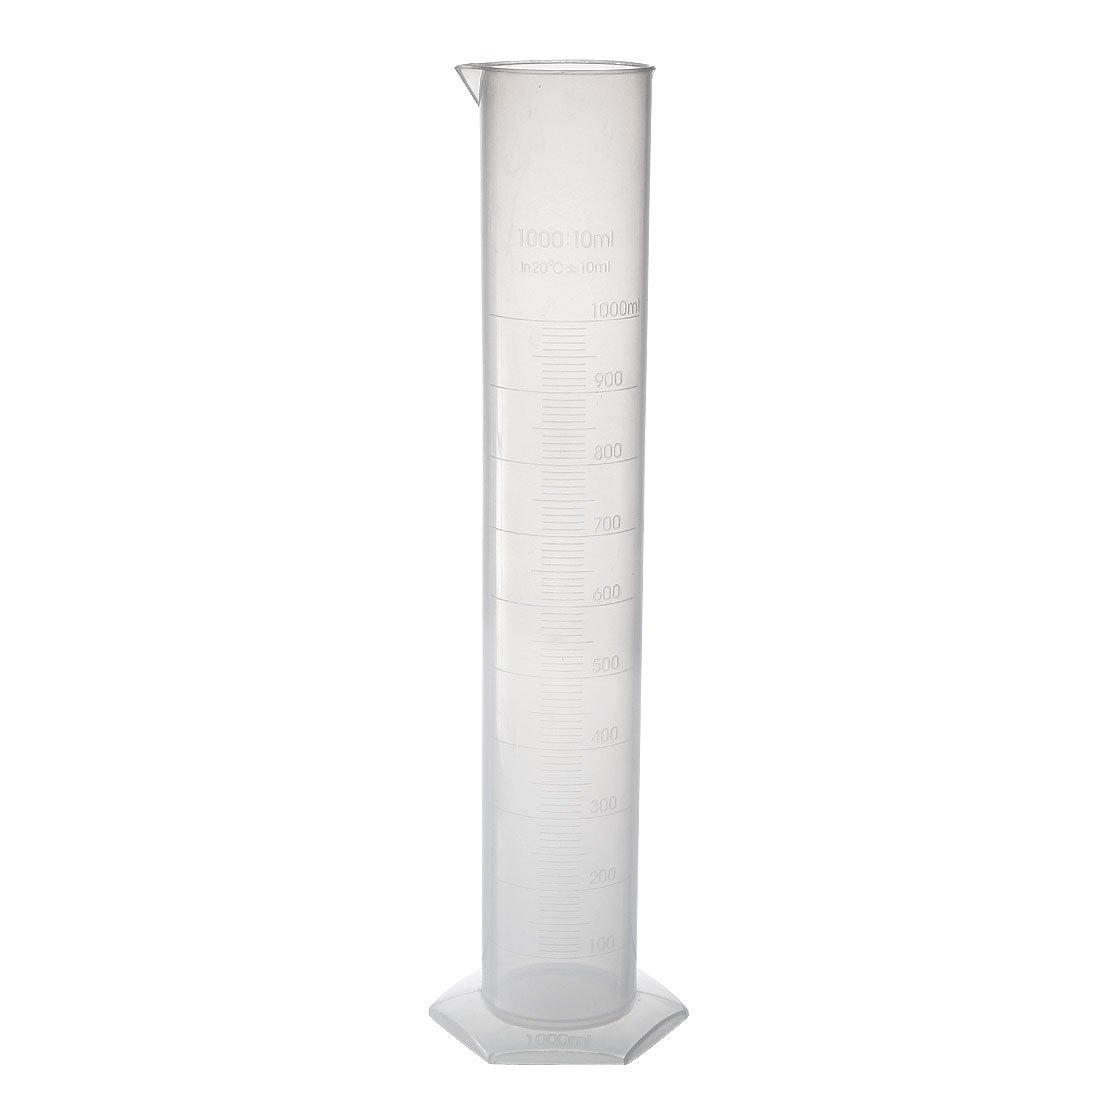 sourcingmap 1000ml Laboratory Measurements Clear White Plastic Hex Base Graduated Cylinder for Chemical Measuring